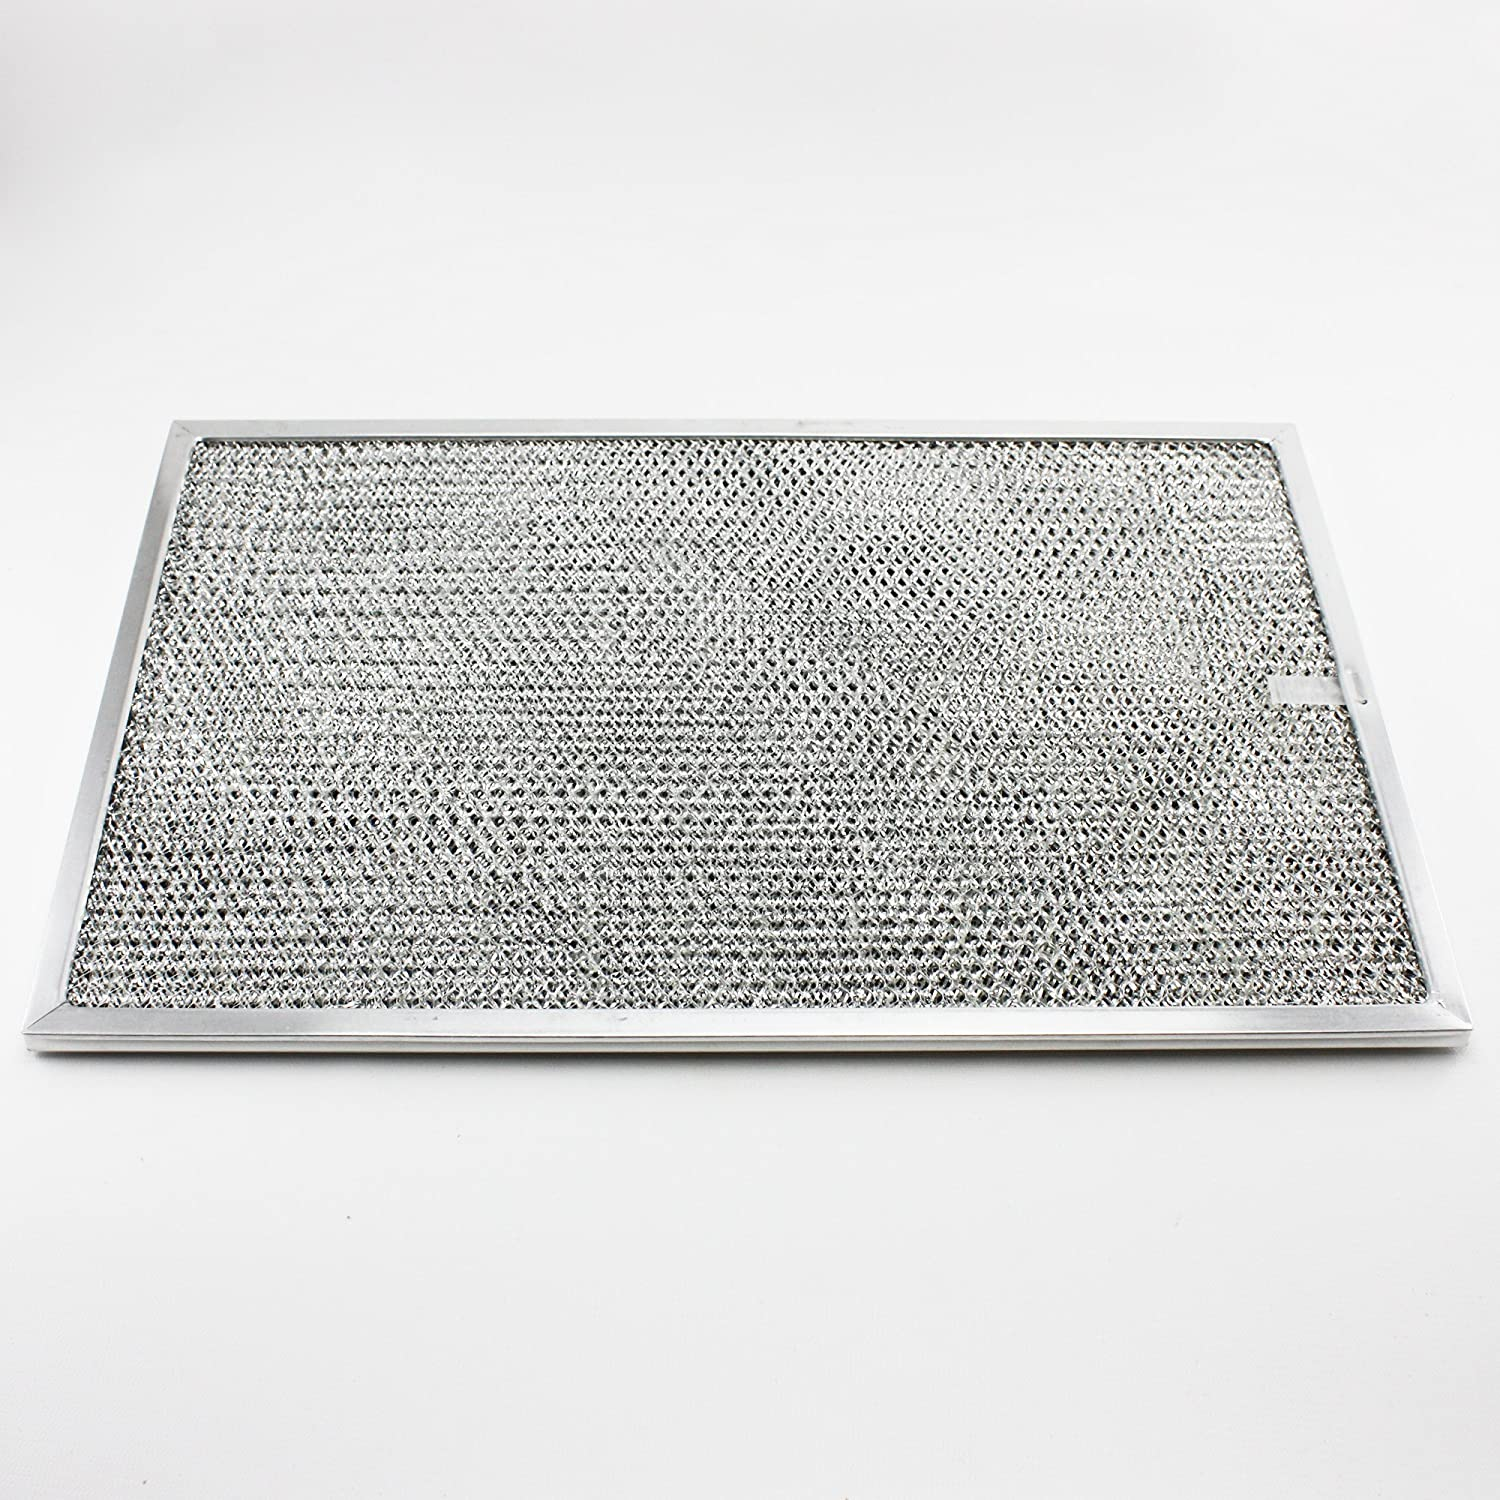 GE Microwave Oven Charcoal Filter, WB2X2892